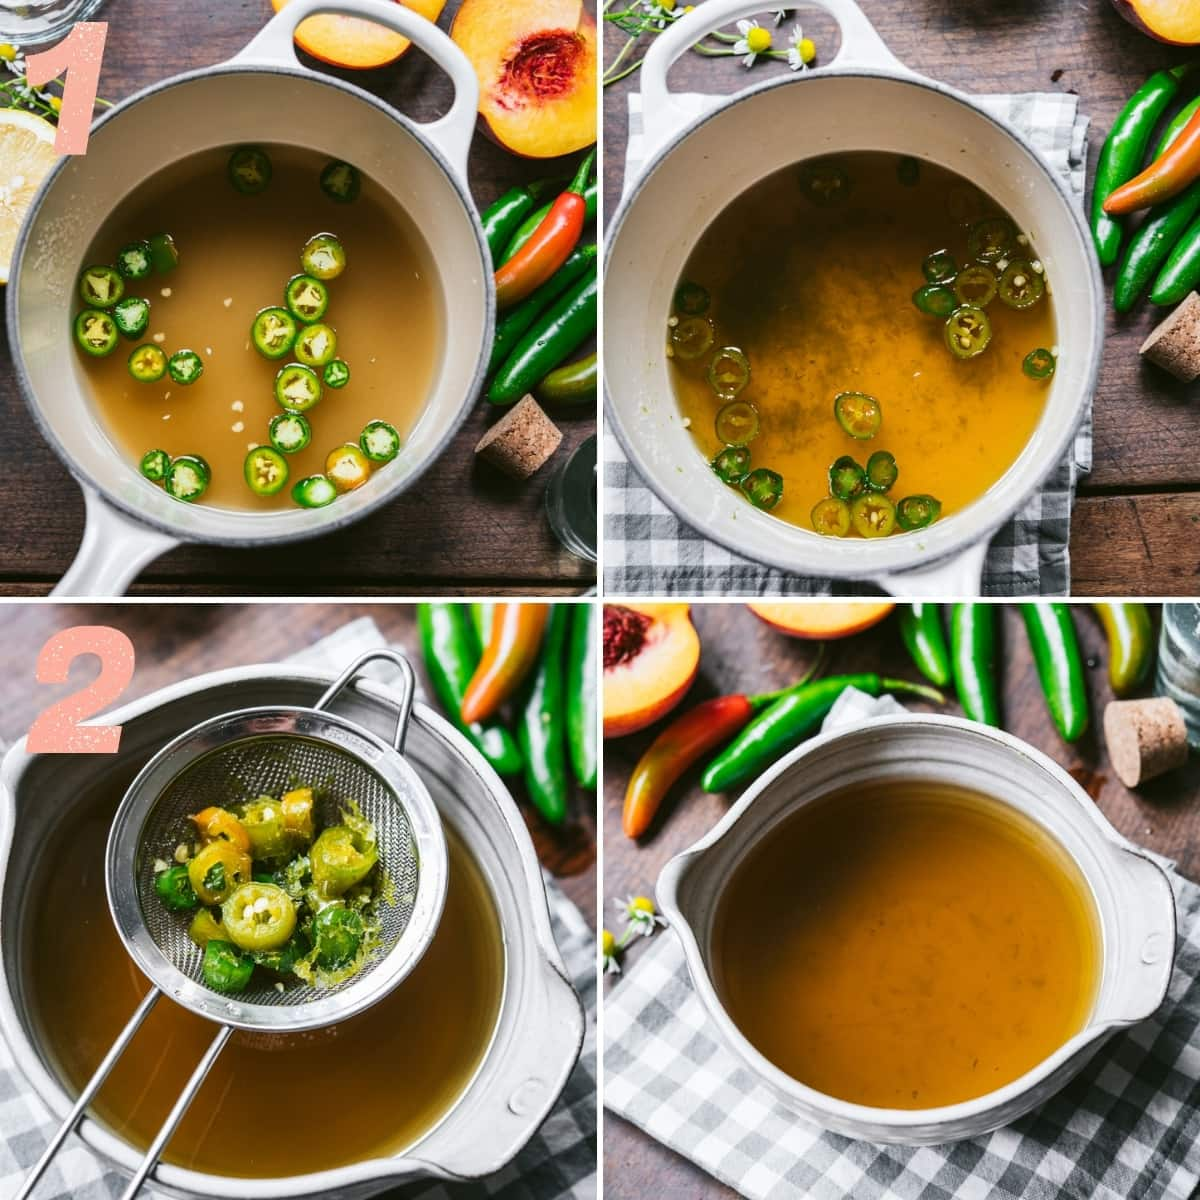 4 photos showing how to make serrano pepper infused simple syrup.